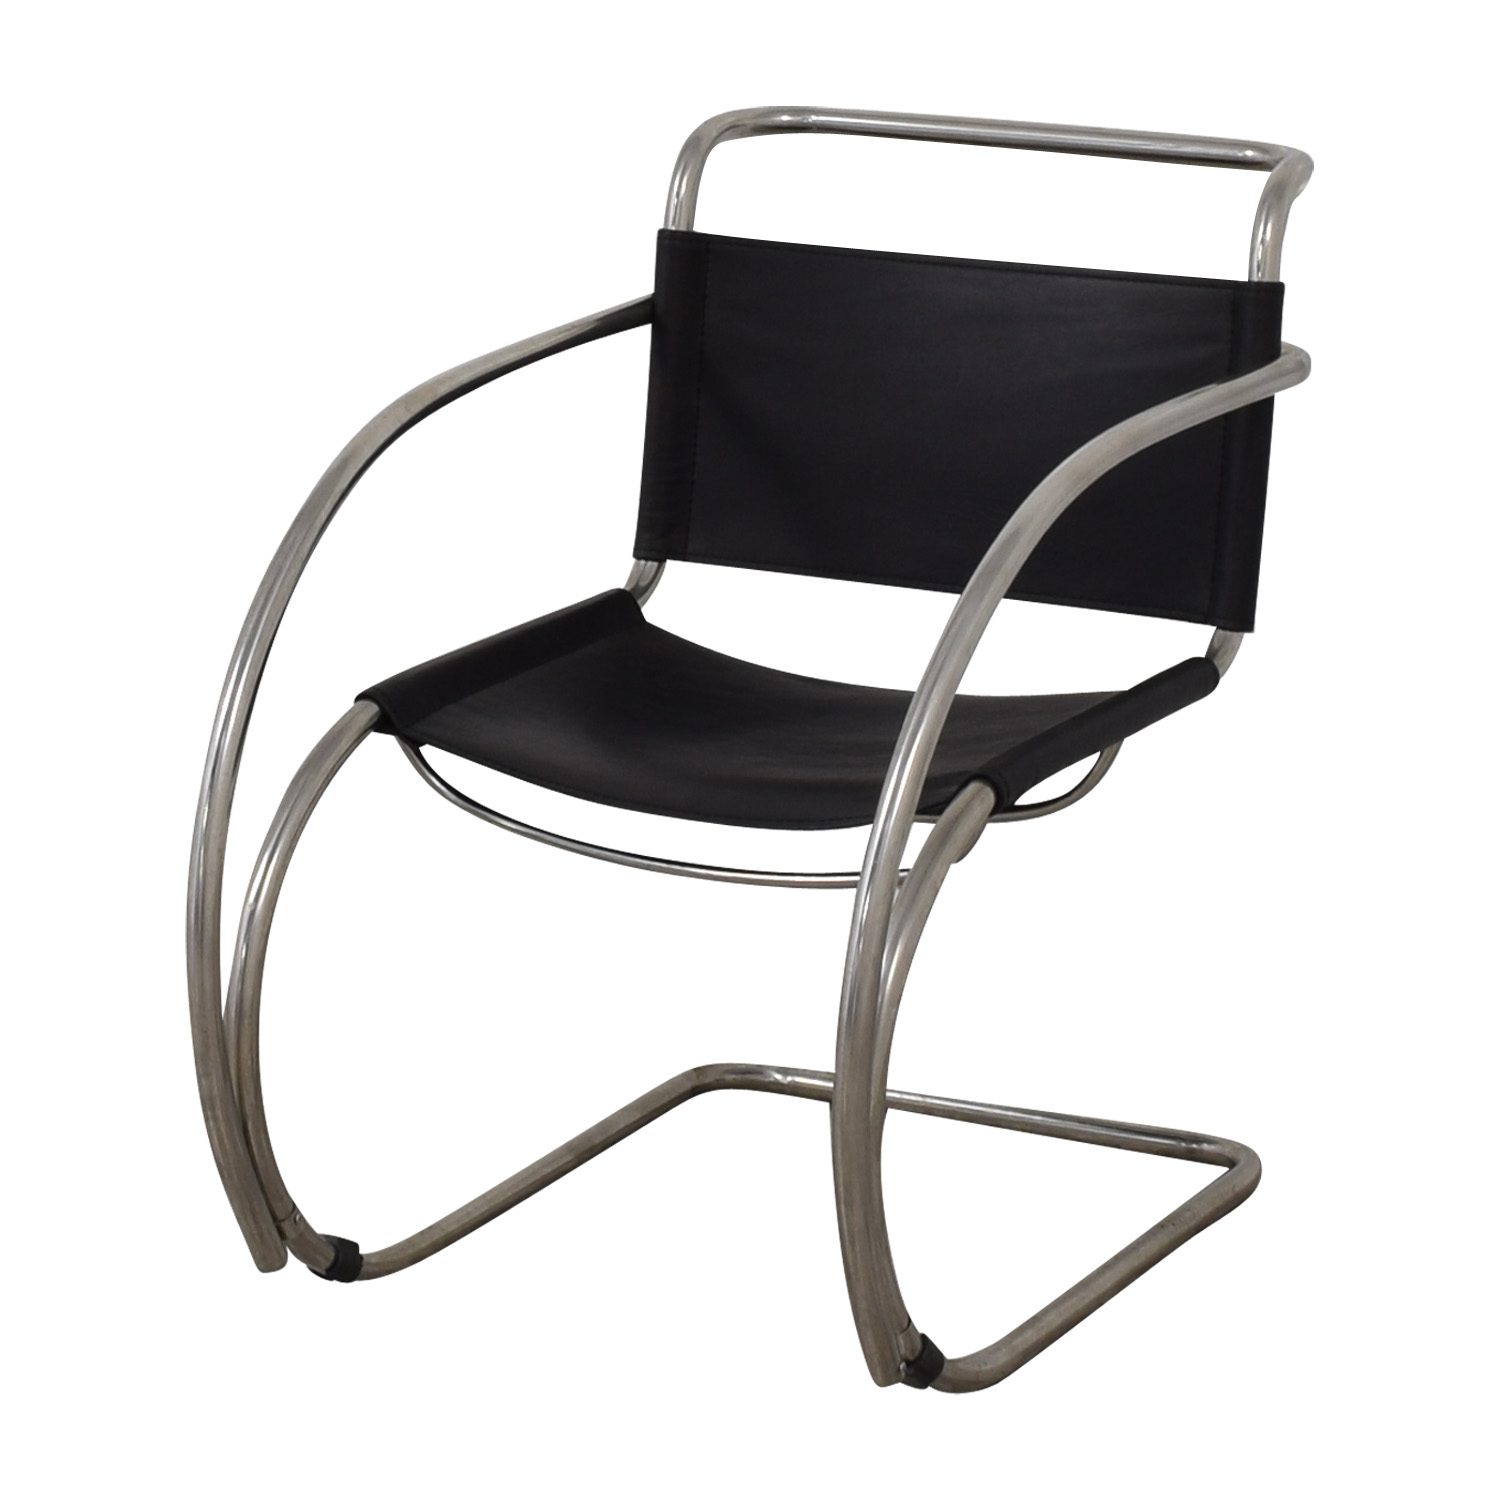 83% OFF   Restoration Hardware Restoration Hardware Cantilevered Armchair /  Chairs